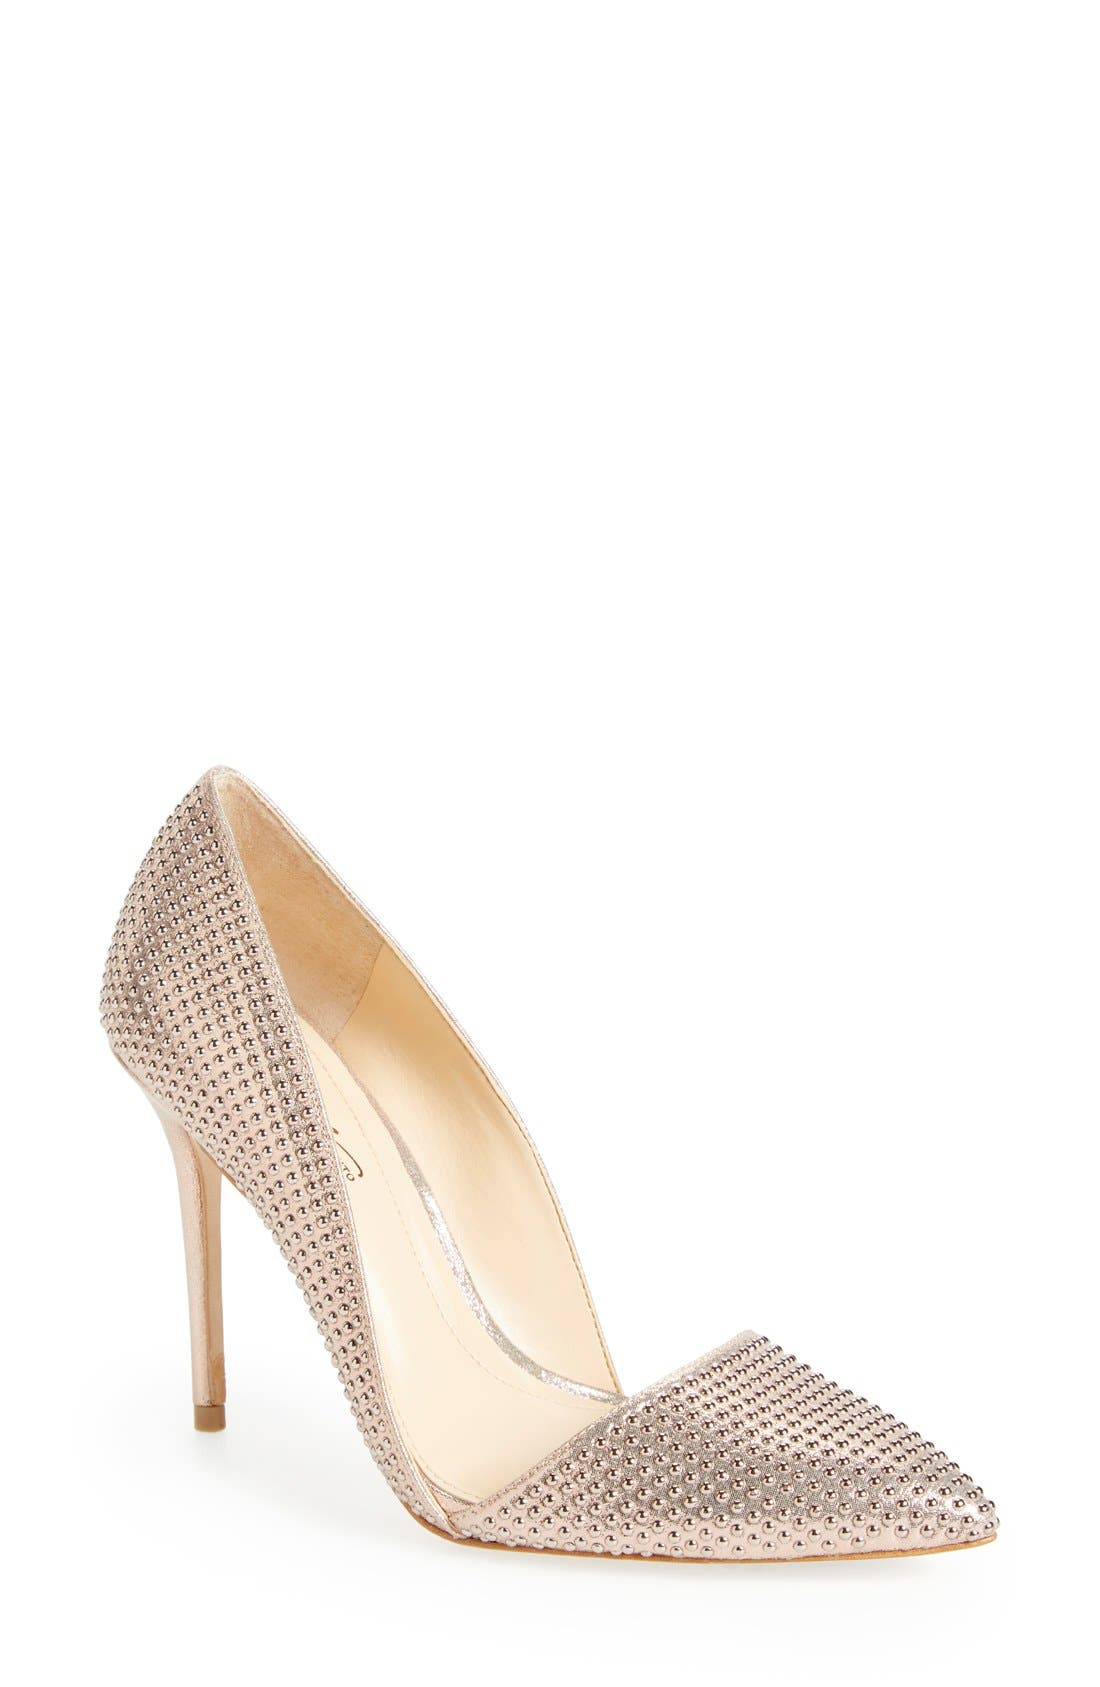 Alternate Image 1 Selected - Imagine Vince Camuto 'Ossie' d'Orsay Pump (Women)